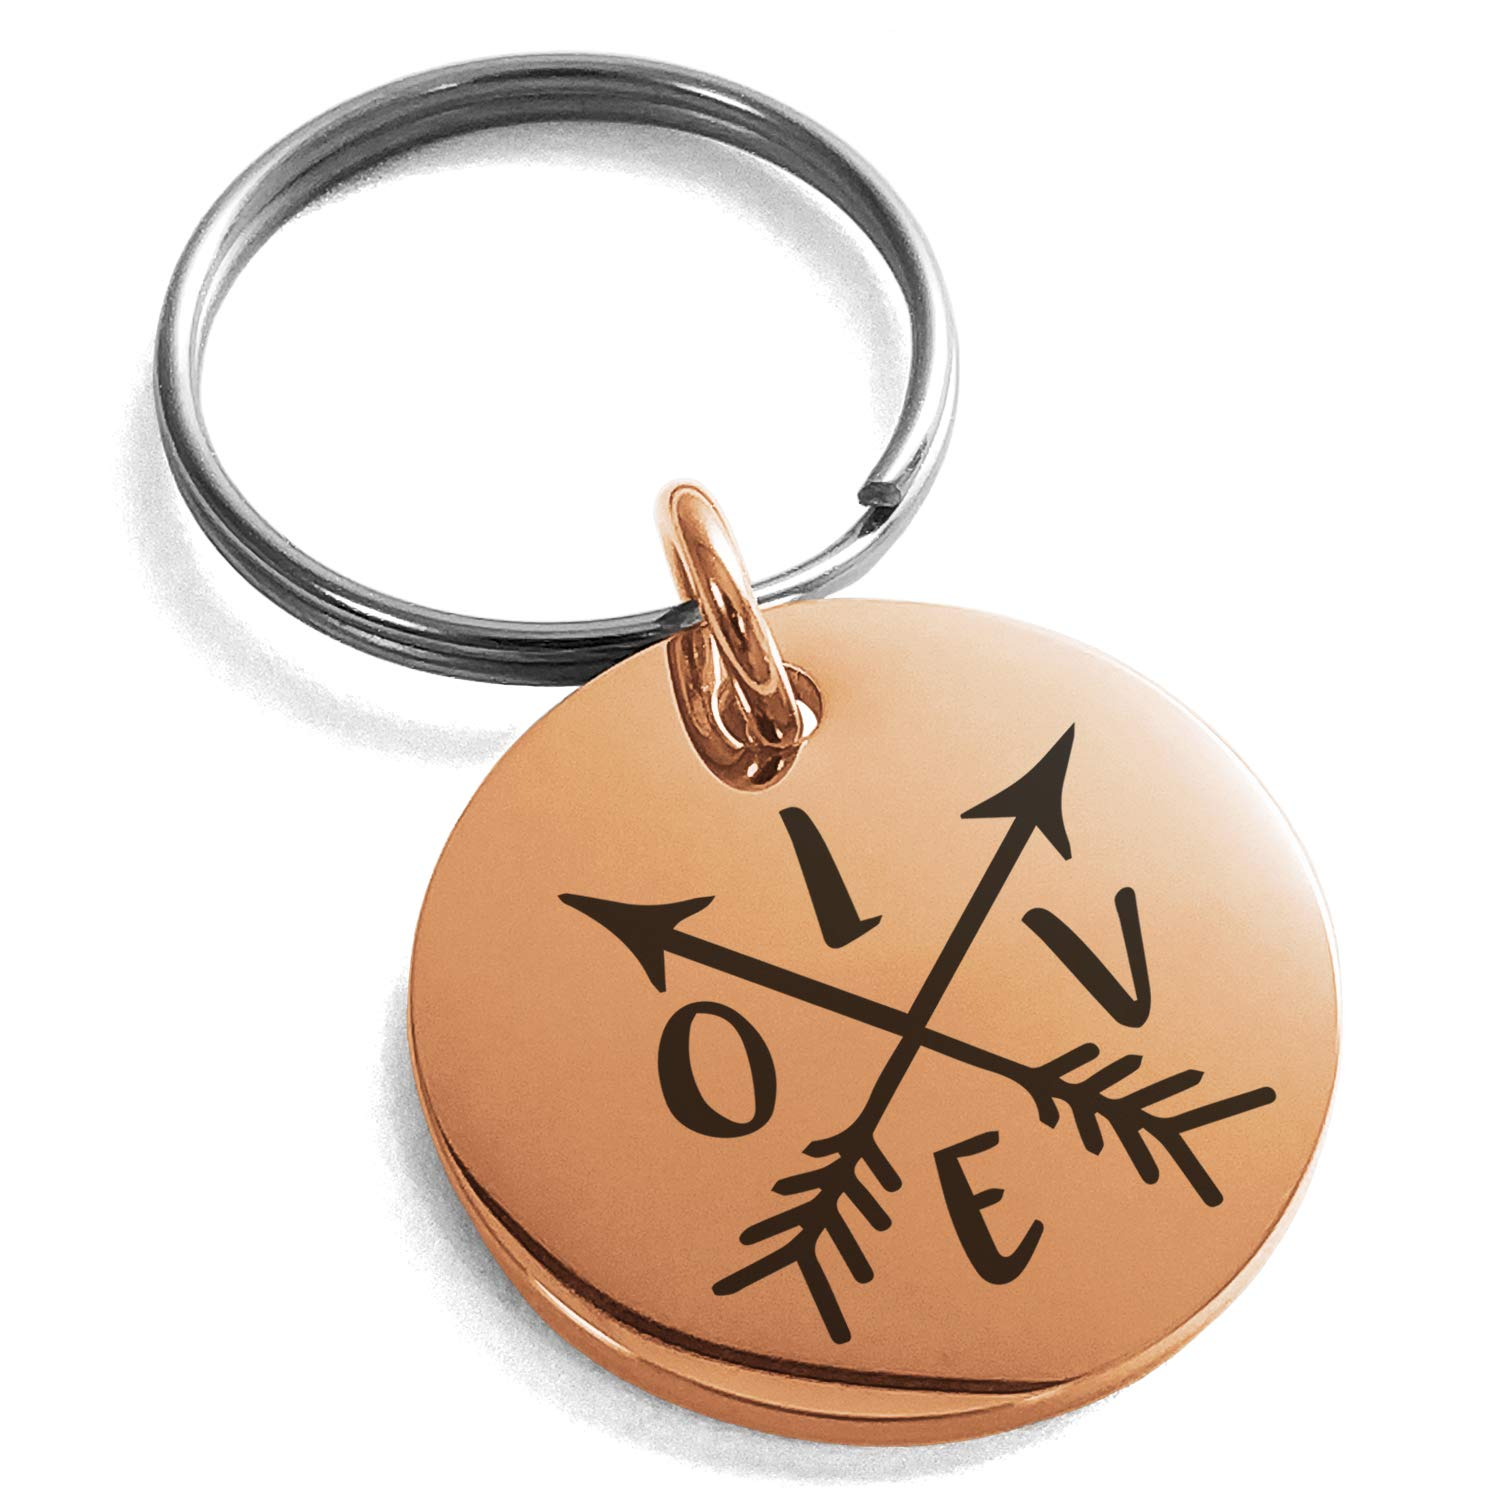 Tioneer Rose Gold Plated Stainless Steel Love Arrow Compass Engraved Small Medallion Circle Charm Keychain Keyring by Tioneer (Image #1)